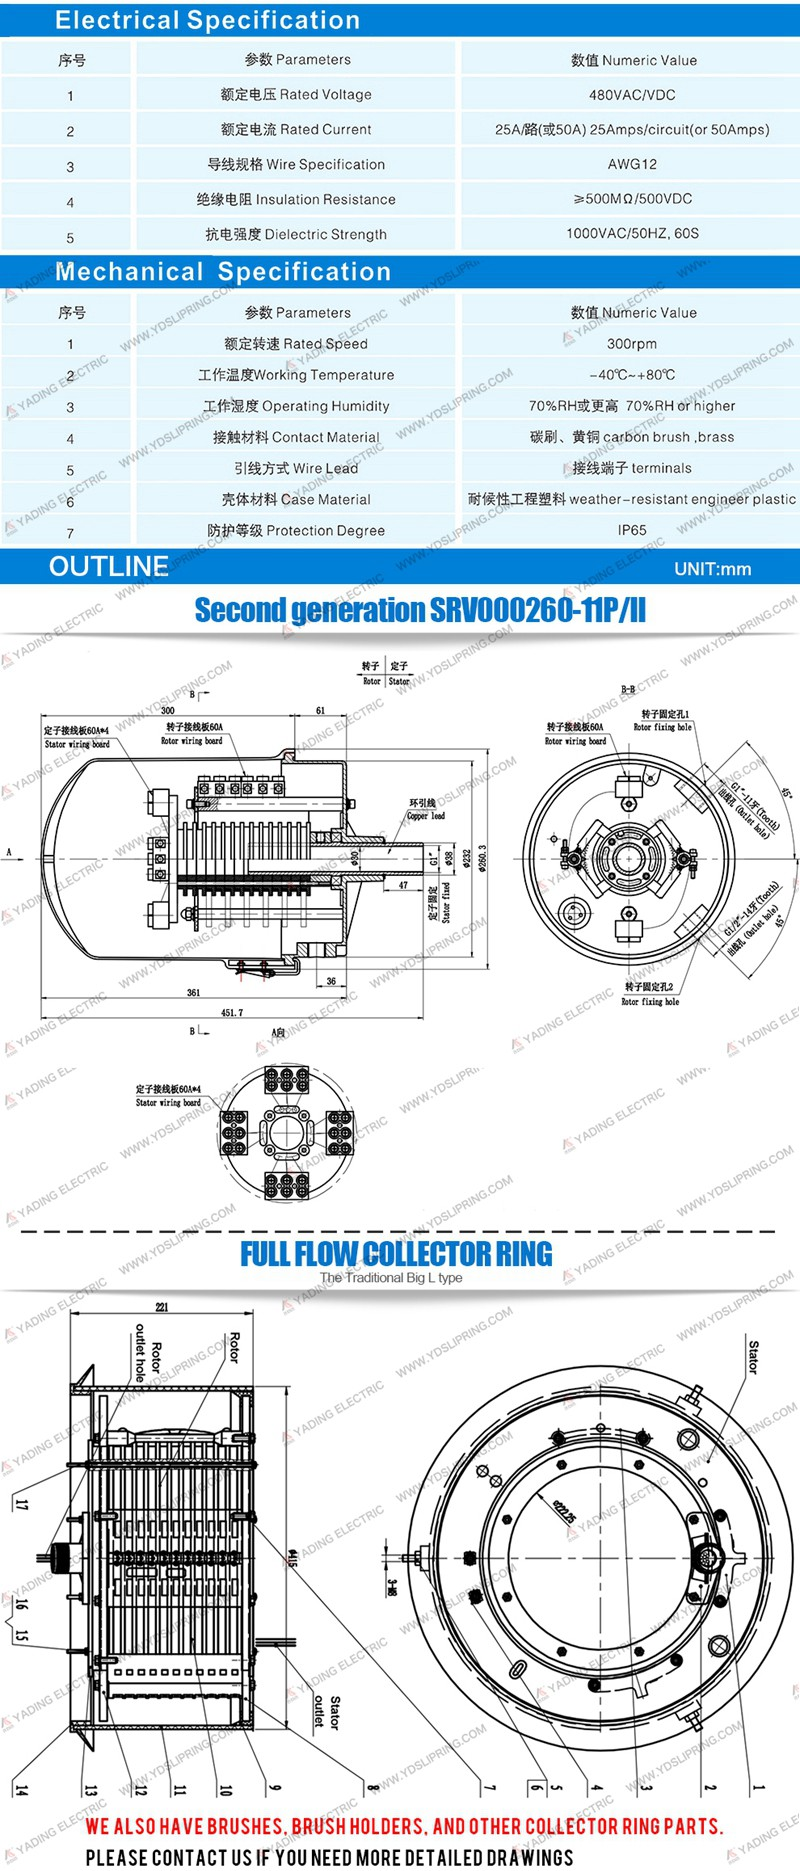 Center Pivot Irrigation Control Collector Ring Buy 11 Tooth Stator Wiring Diagram Available In Different Configurations 12 And 13 Conductor